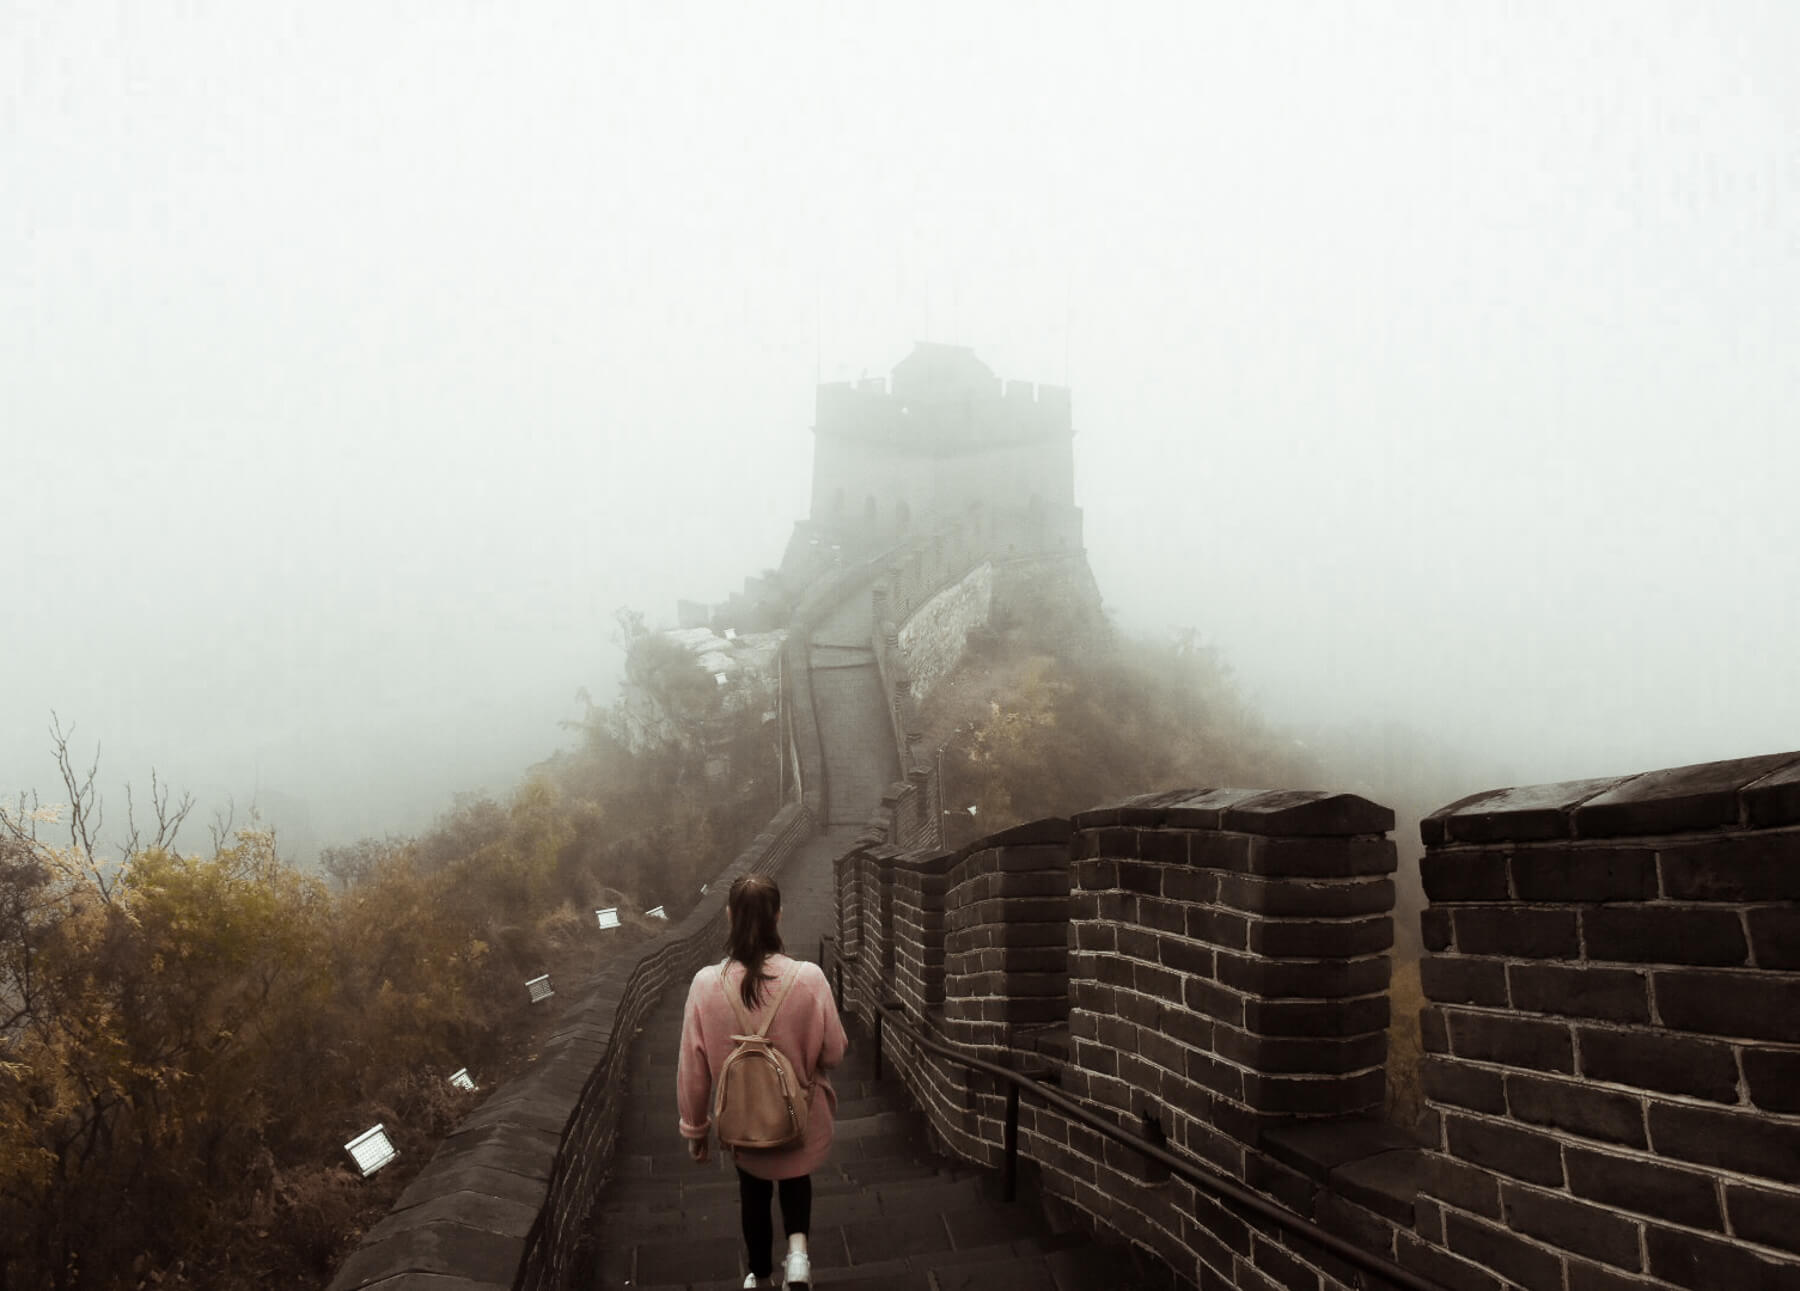 A young girl with red hair, walking the Great Wall of China high up in the mountain